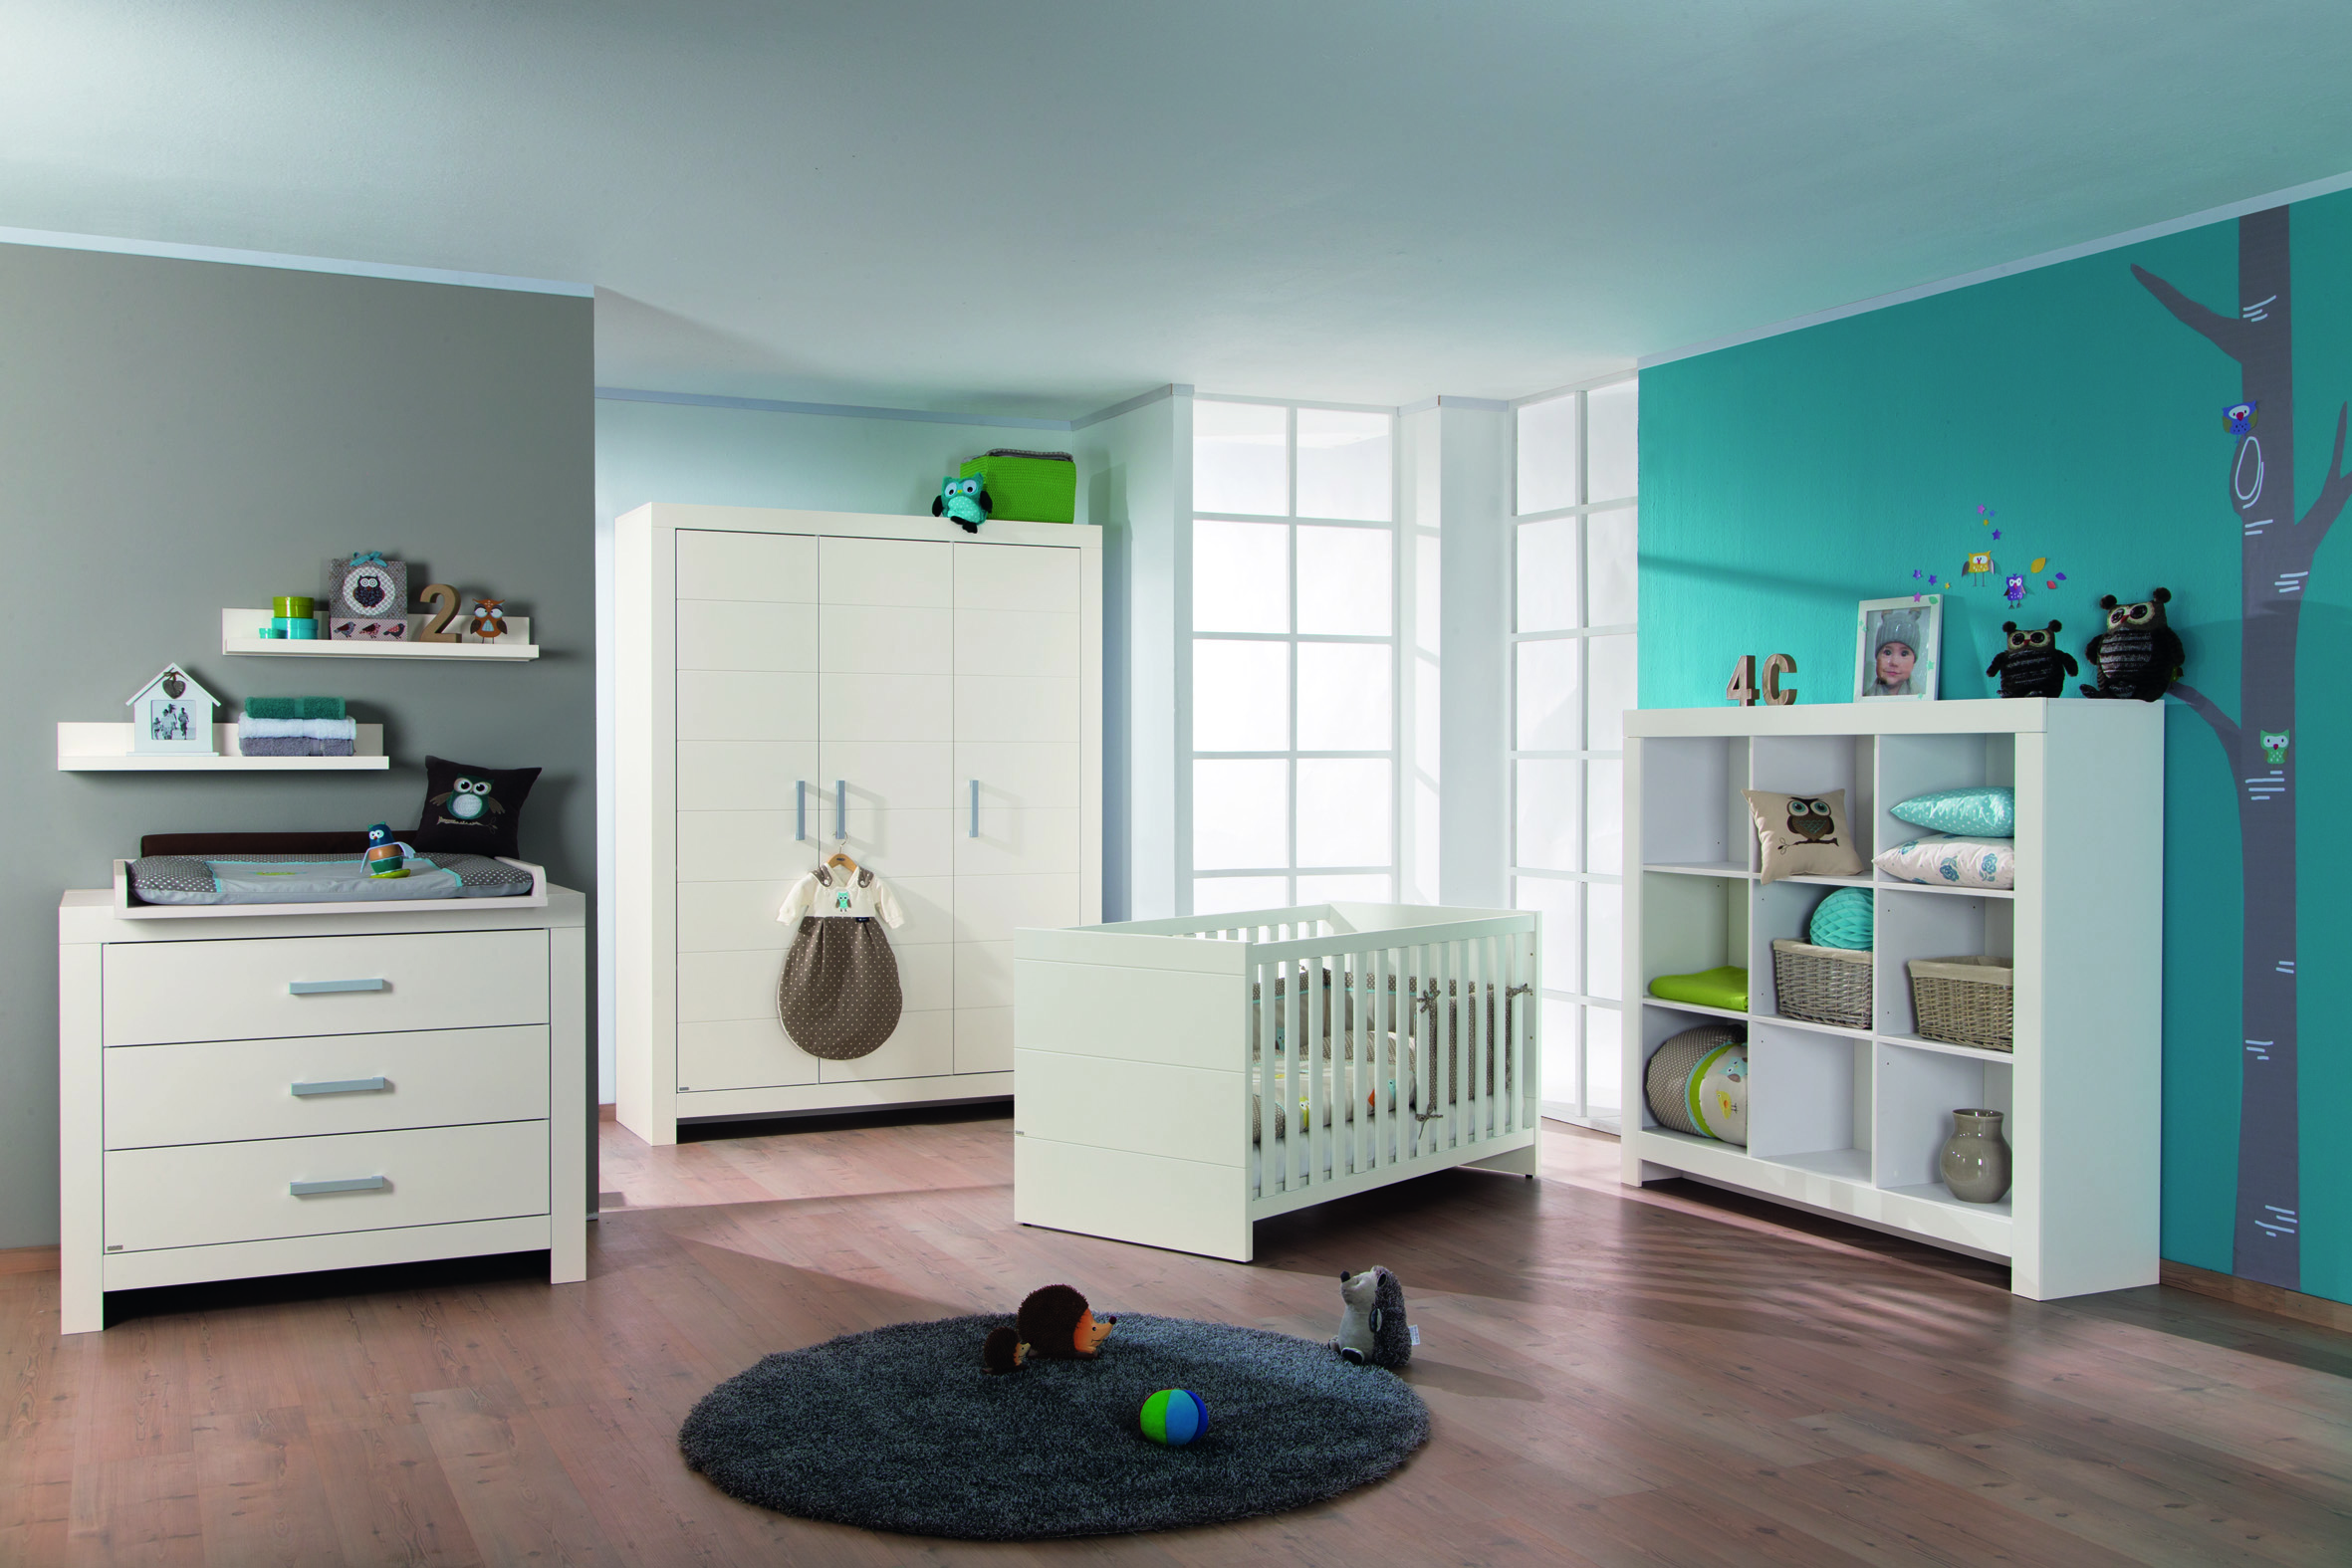 paidi kinderzimmer fiona mit 2 t rigem schrank baby fachmarkt f r babyausstattung gmbh. Black Bedroom Furniture Sets. Home Design Ideas